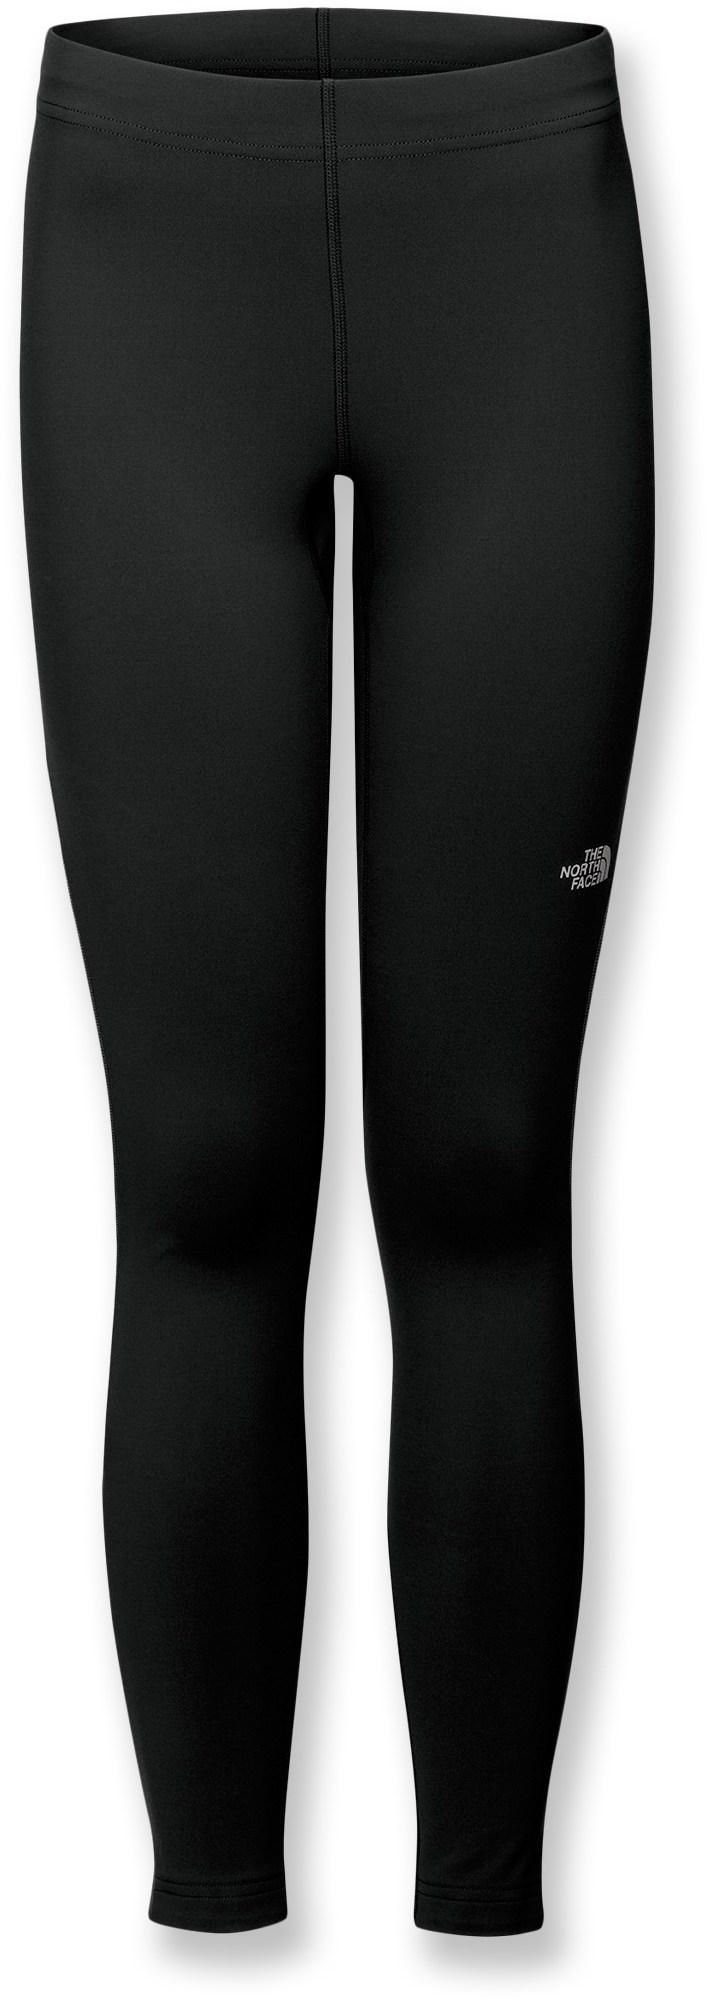 At REI Outlet: Women's The North Face GTD Tights — Great alone or as a layer.